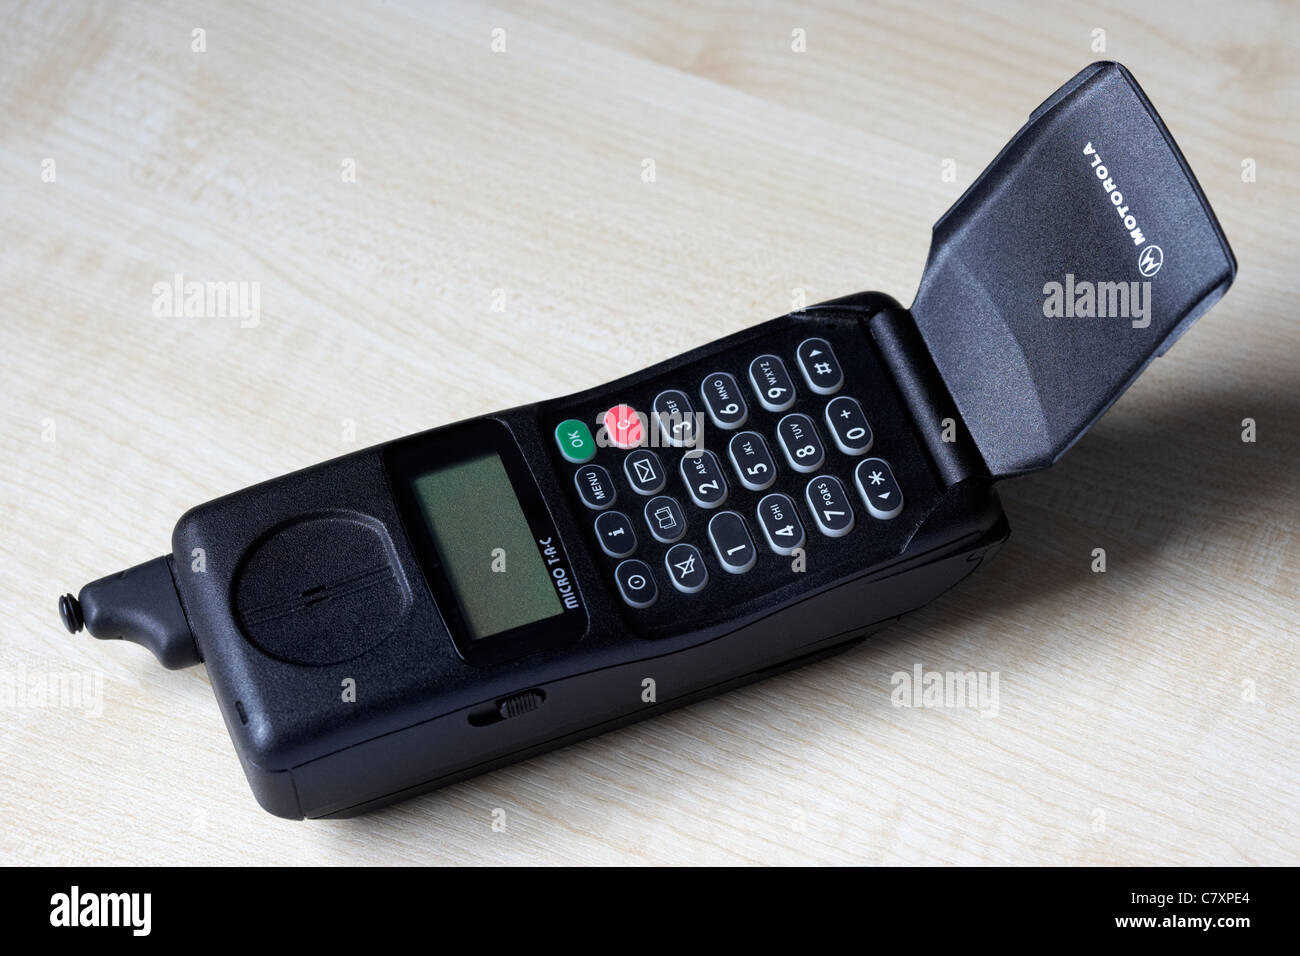 flip open on a motorola micro tac international 7500 gsm 900 mobile phone from the mid nineties - Stock Image